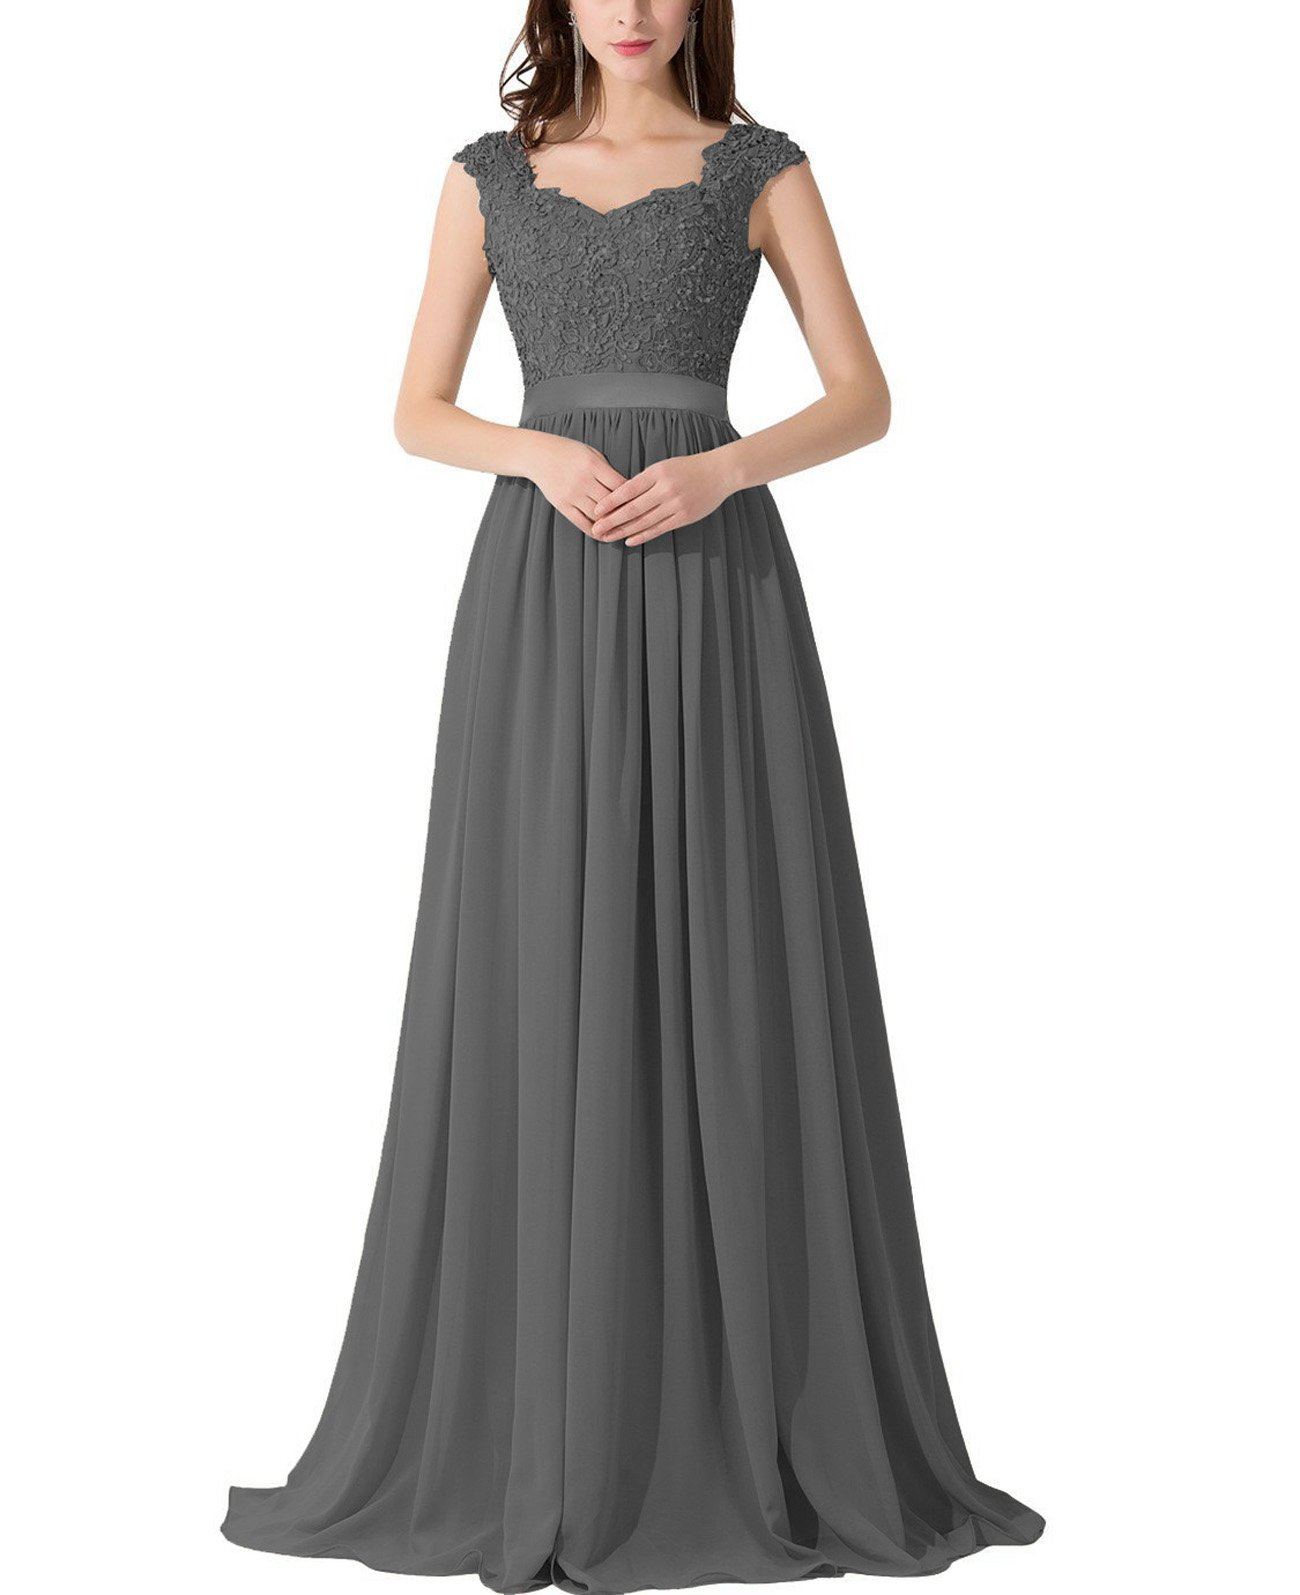 6ff80aa040a VaniaDress Women Applique Beading Long Evening Dress Formal Gowns V007LF Dark  Gray US14